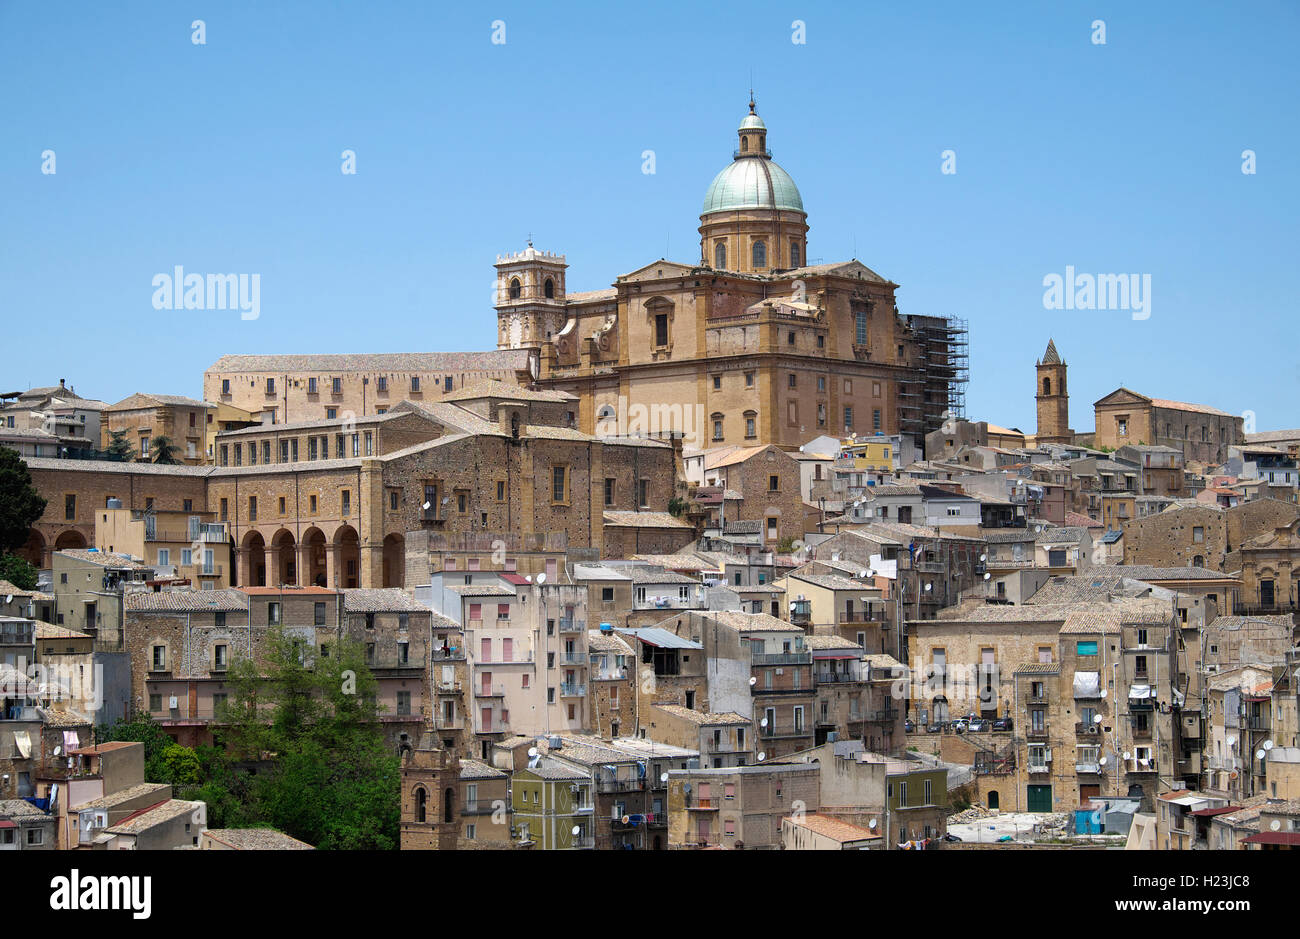 Cathedral and historic center of Piazza Armerina, Sicily, Italy - Stock Image